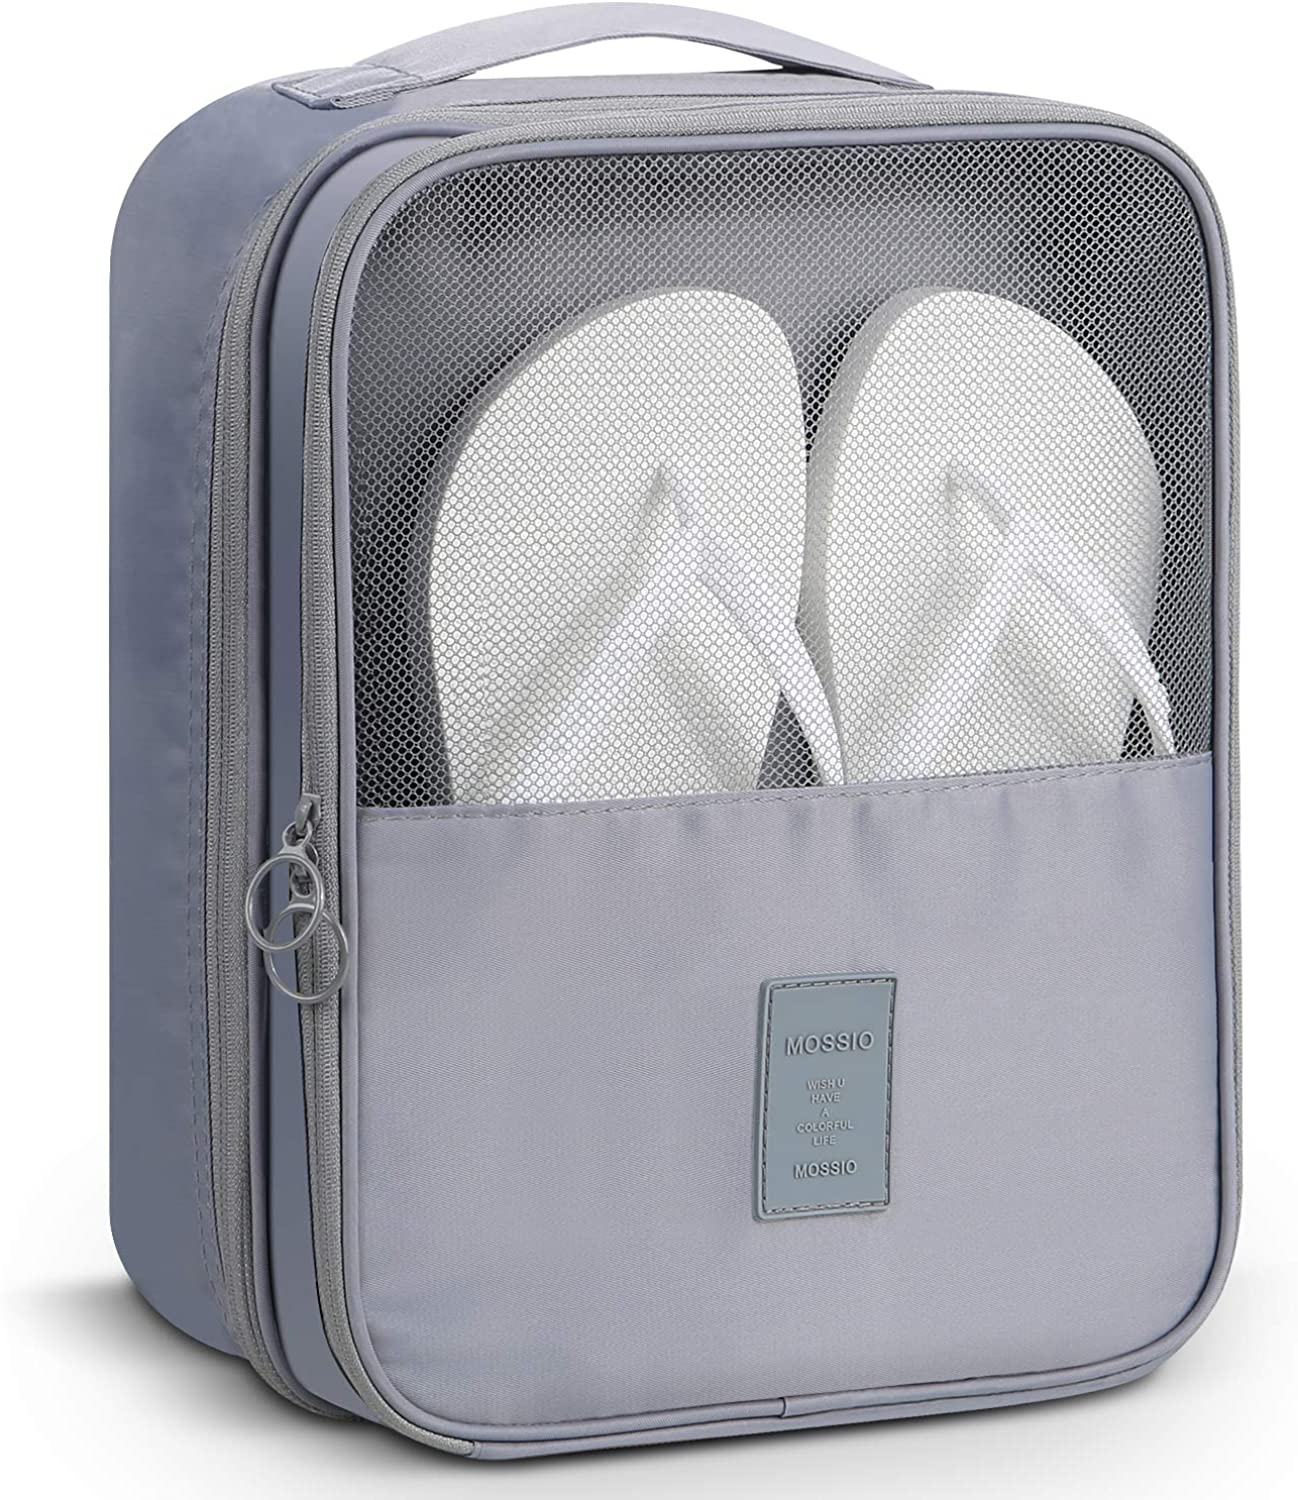 Mossio Shoe Bag Holds 3 Pair of Shoes for Travel and Daily Use Storage Pouch